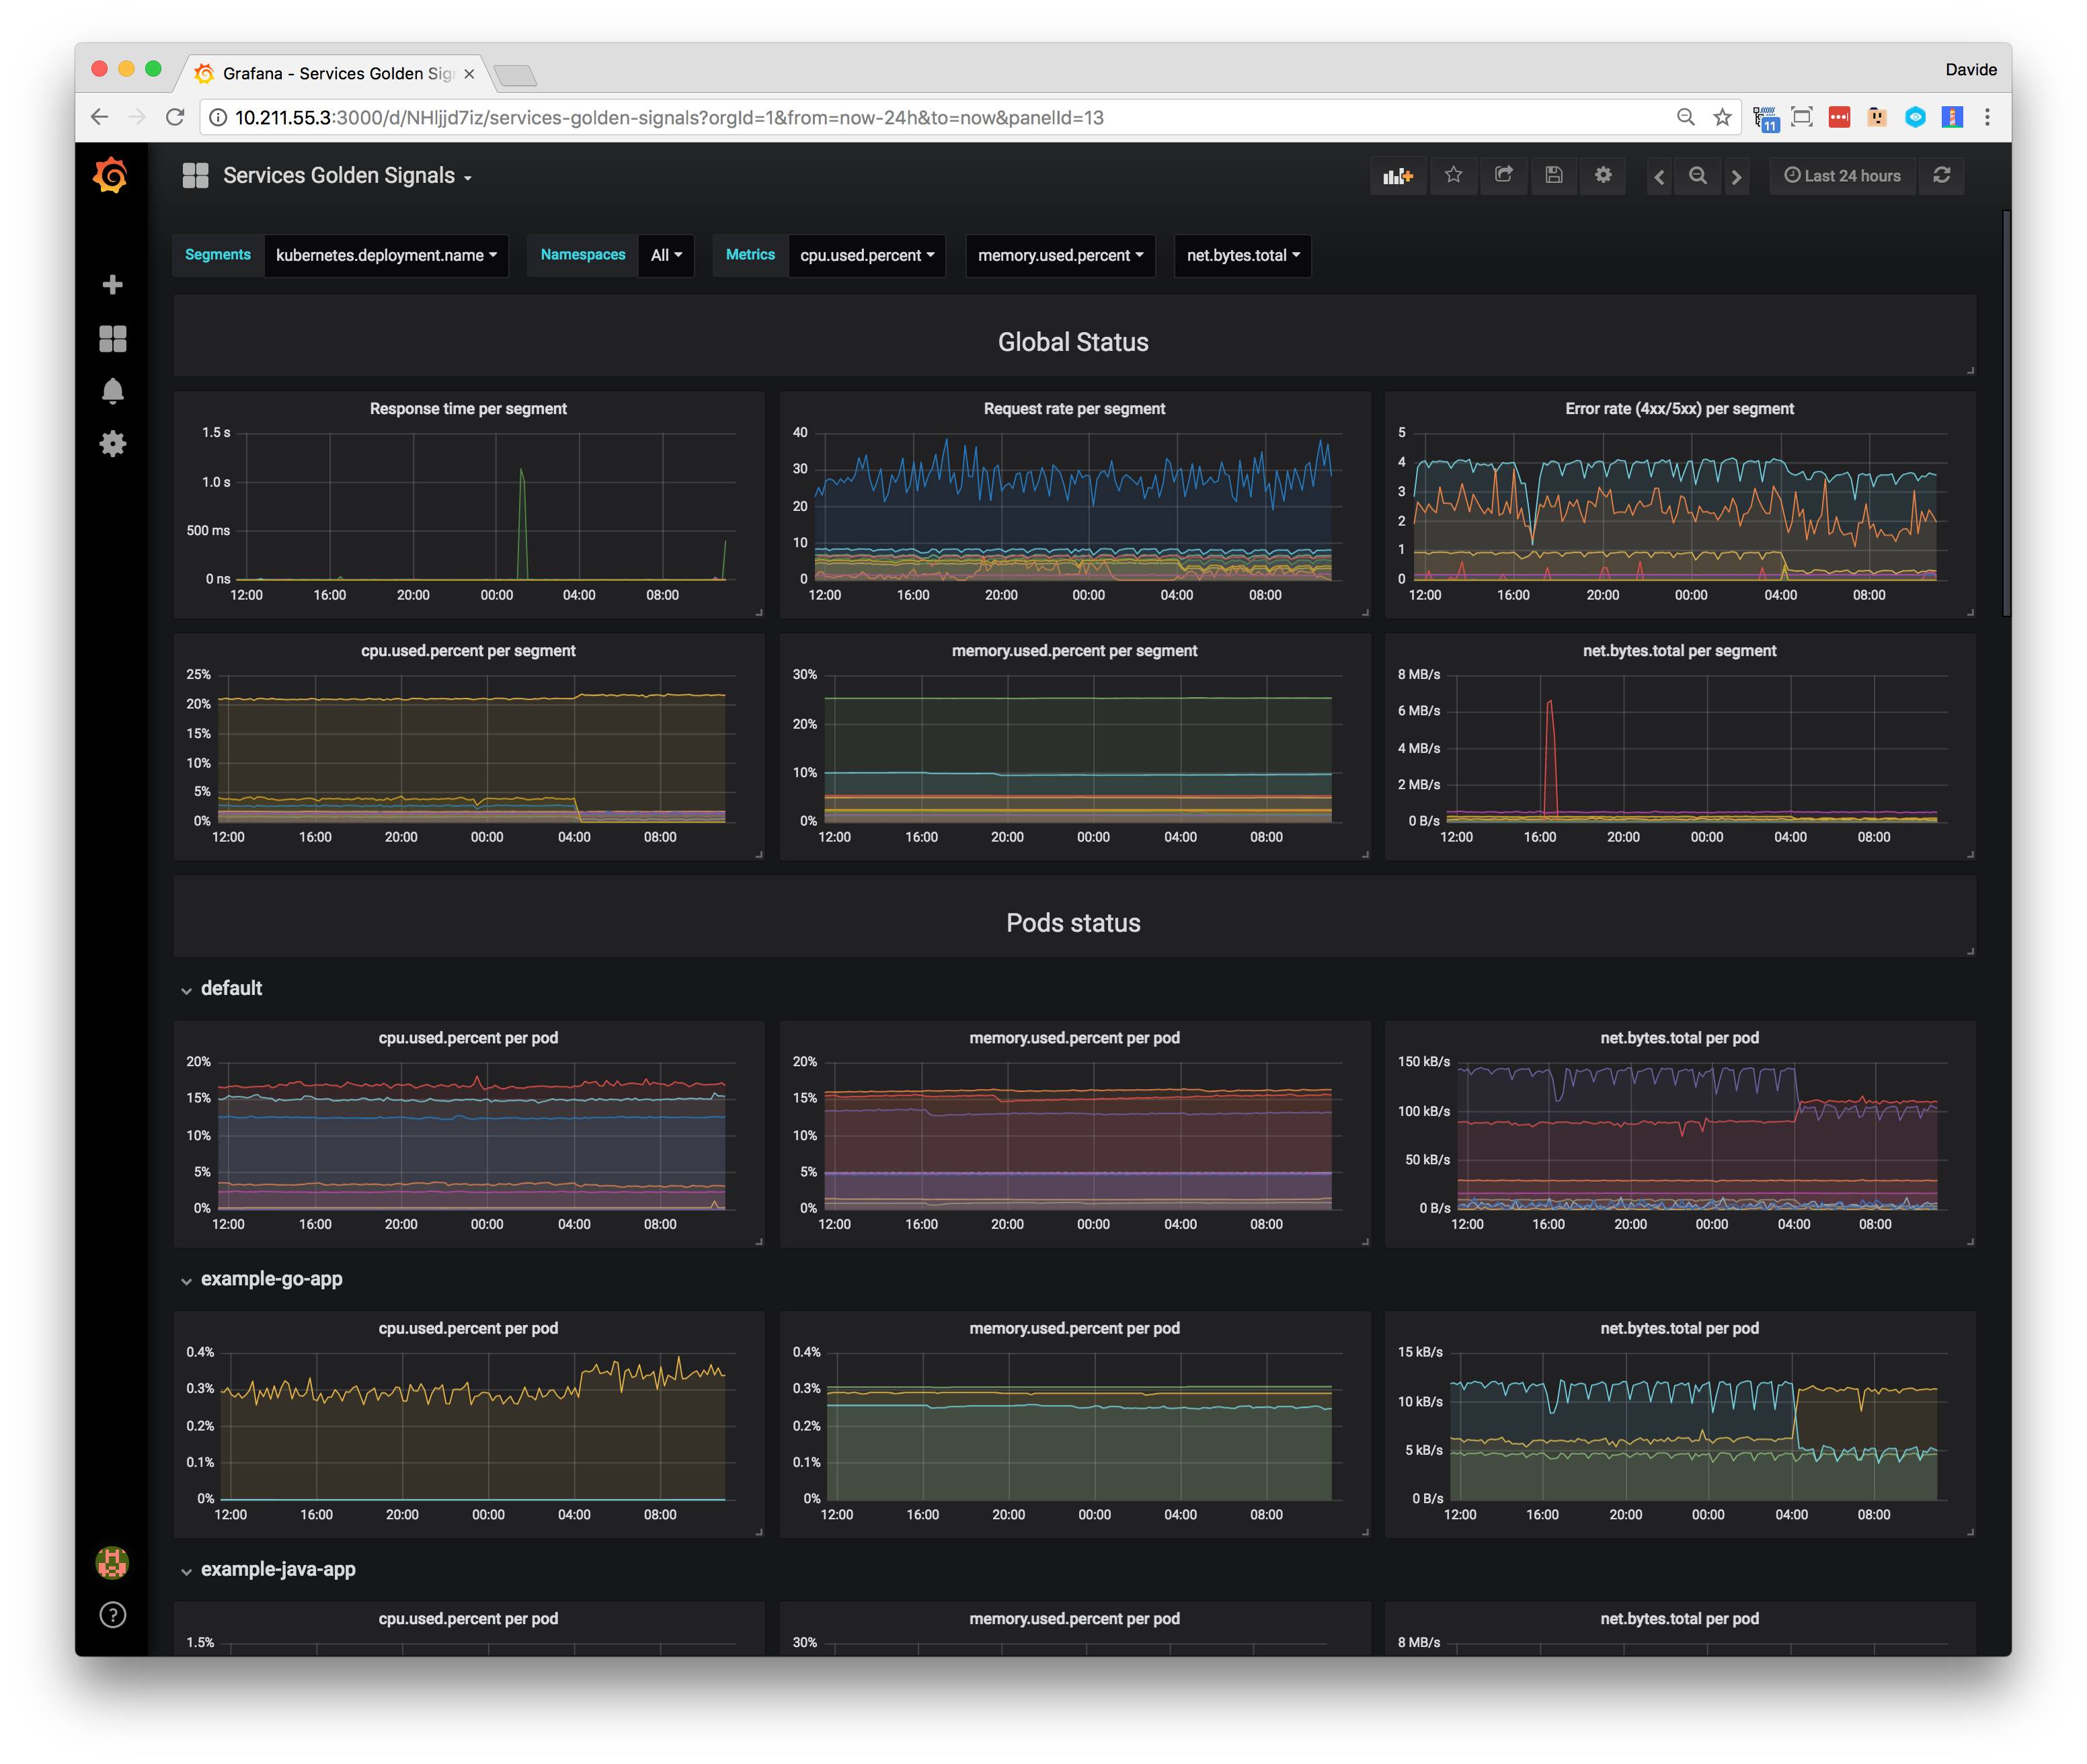 Final dashboard with variables